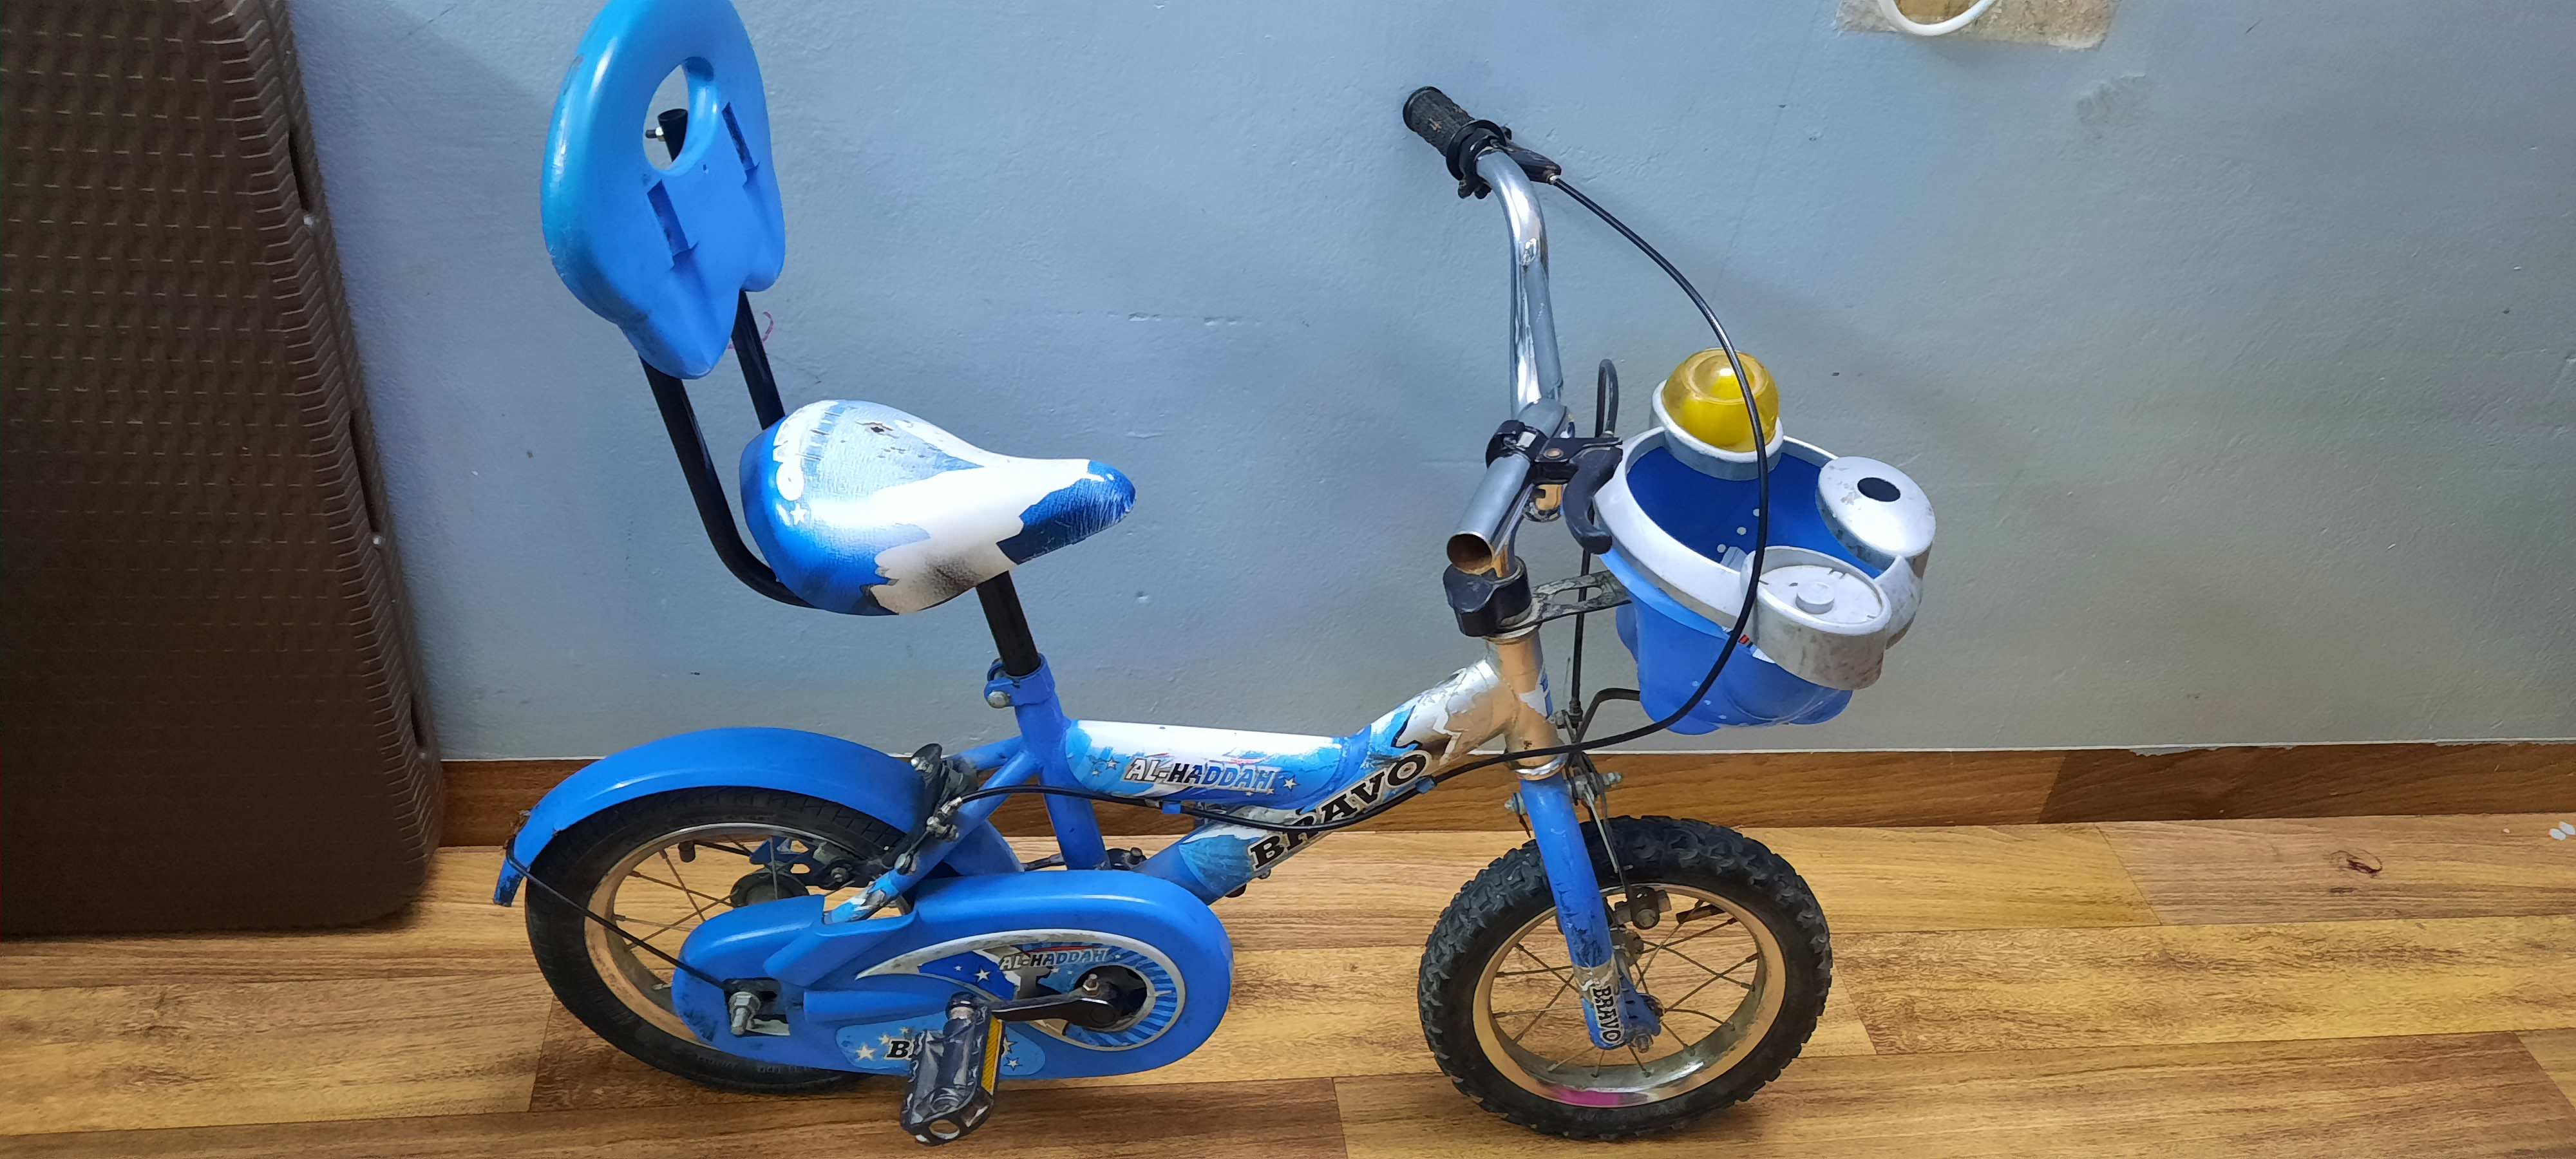 small cycle for sale at mangaf suitable for kids between 2-7 years